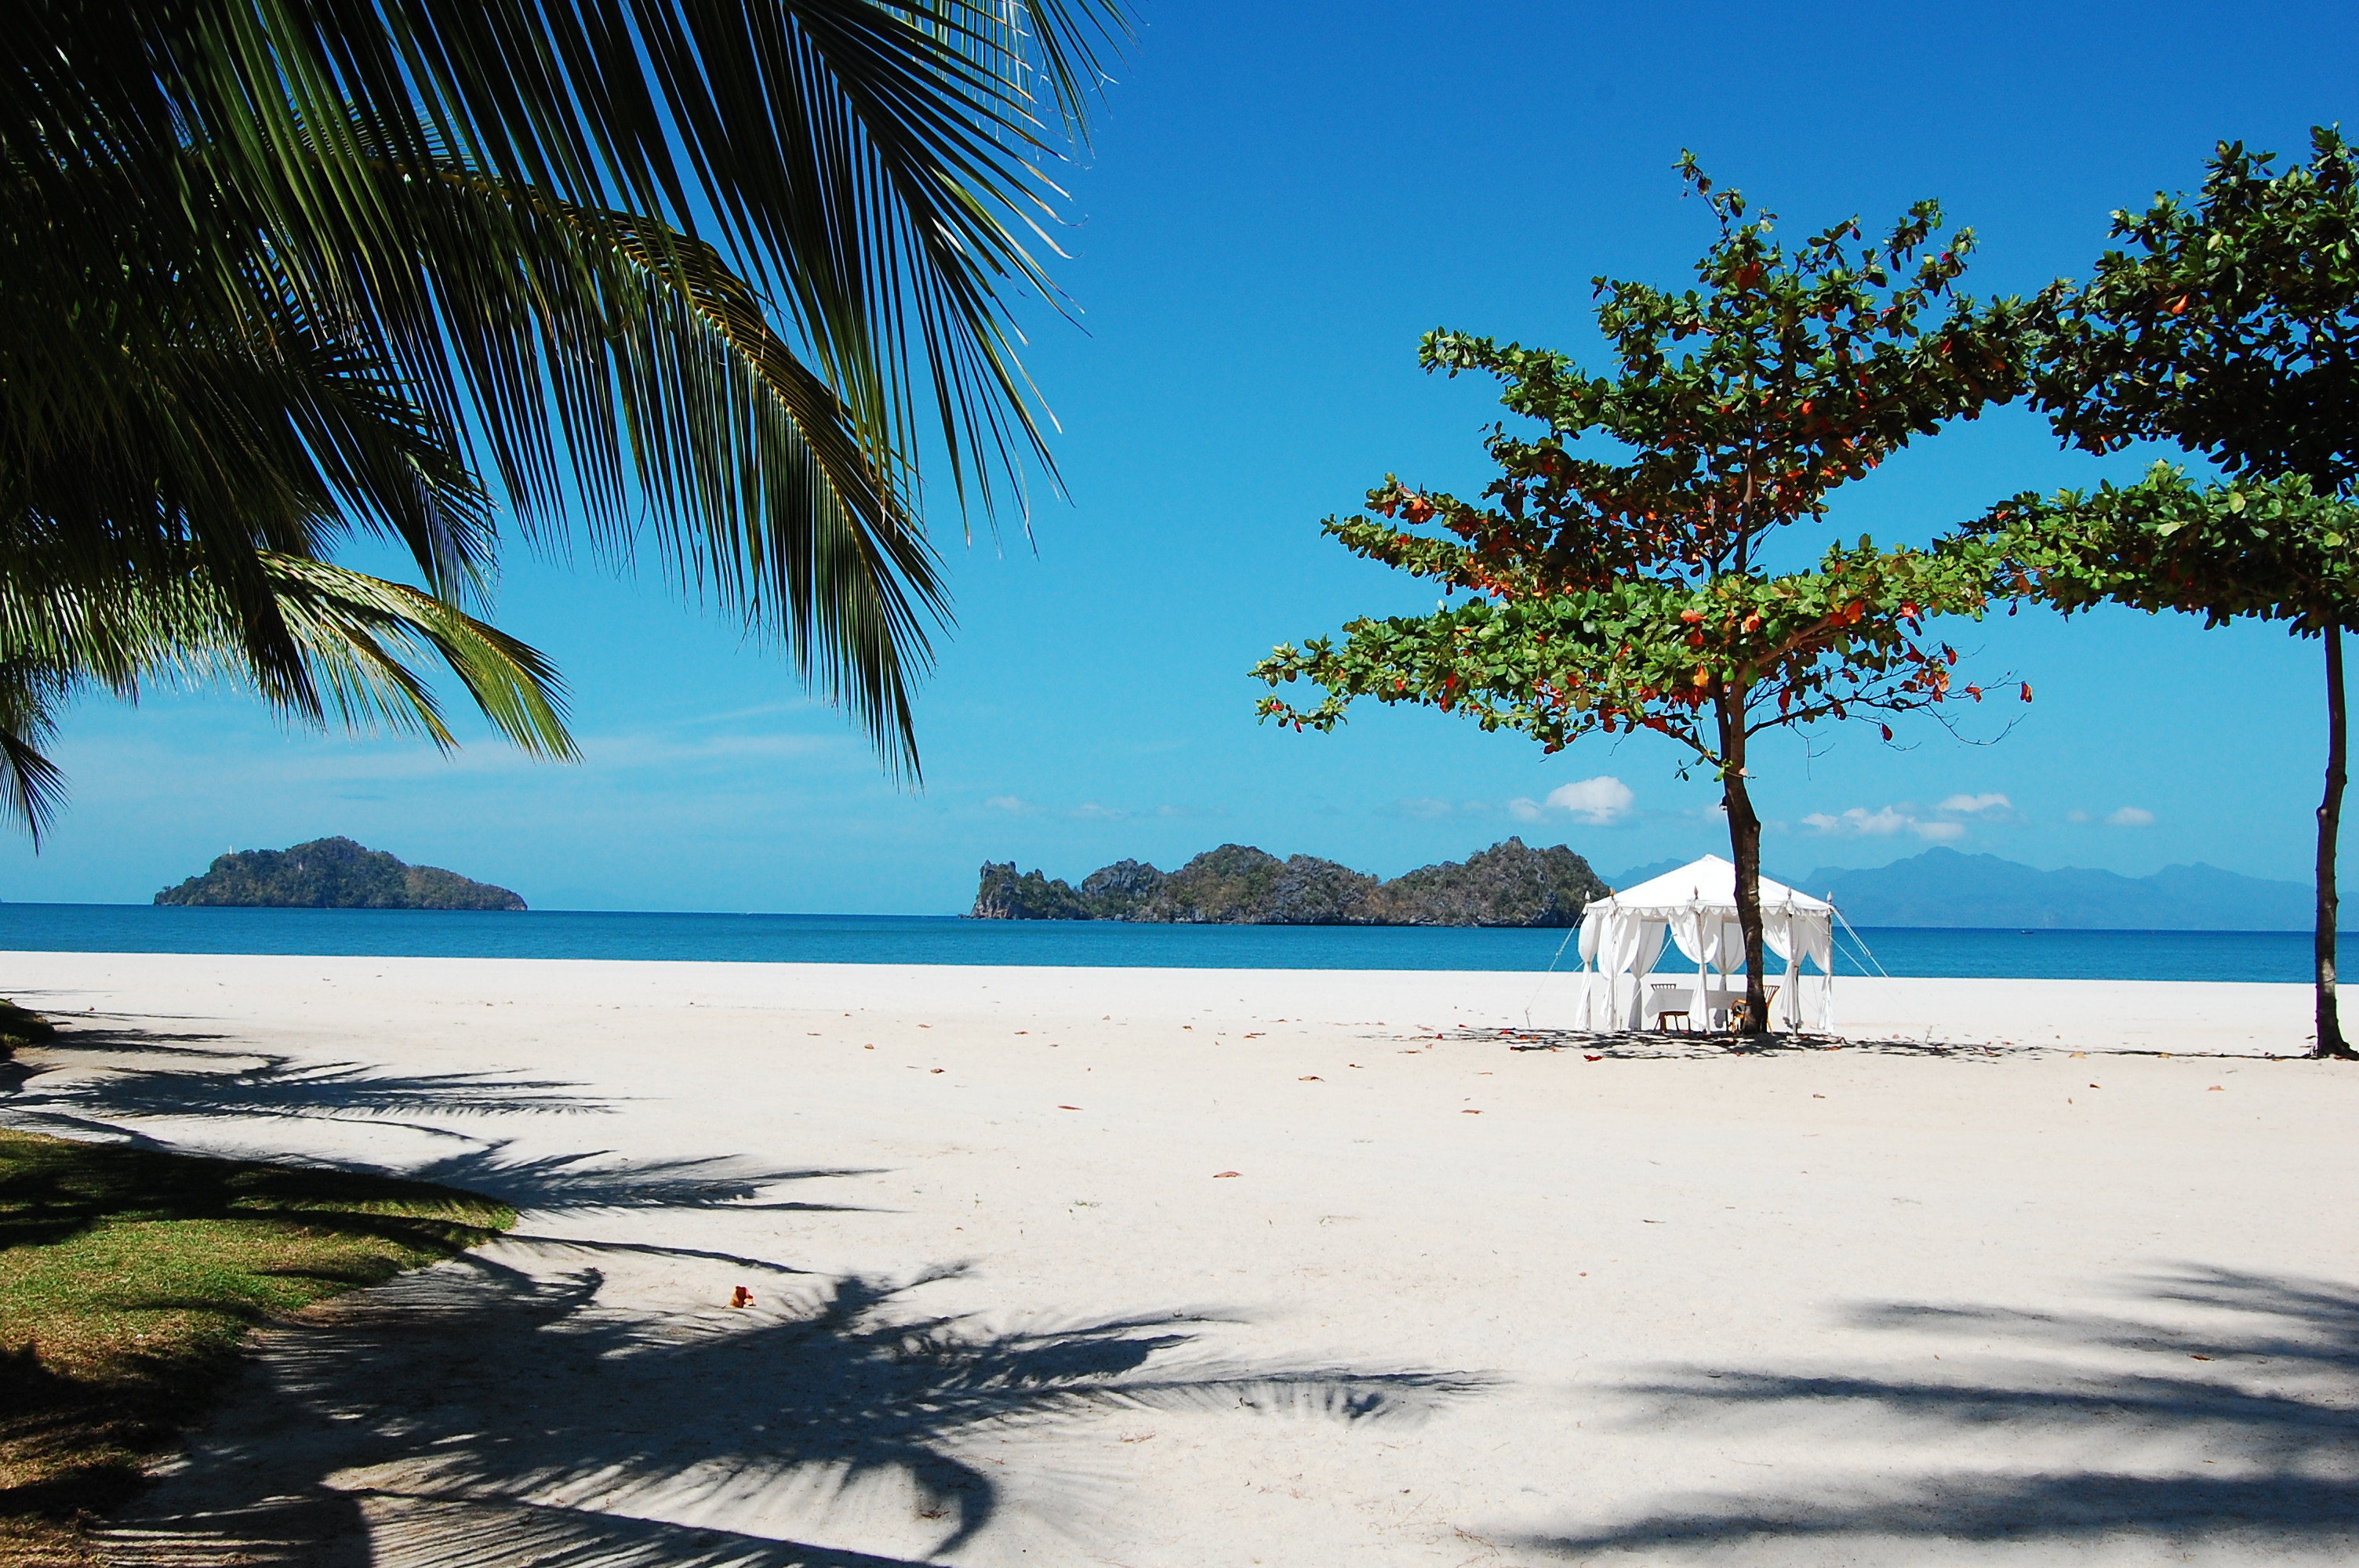 Langkawi – The Idyllic Island